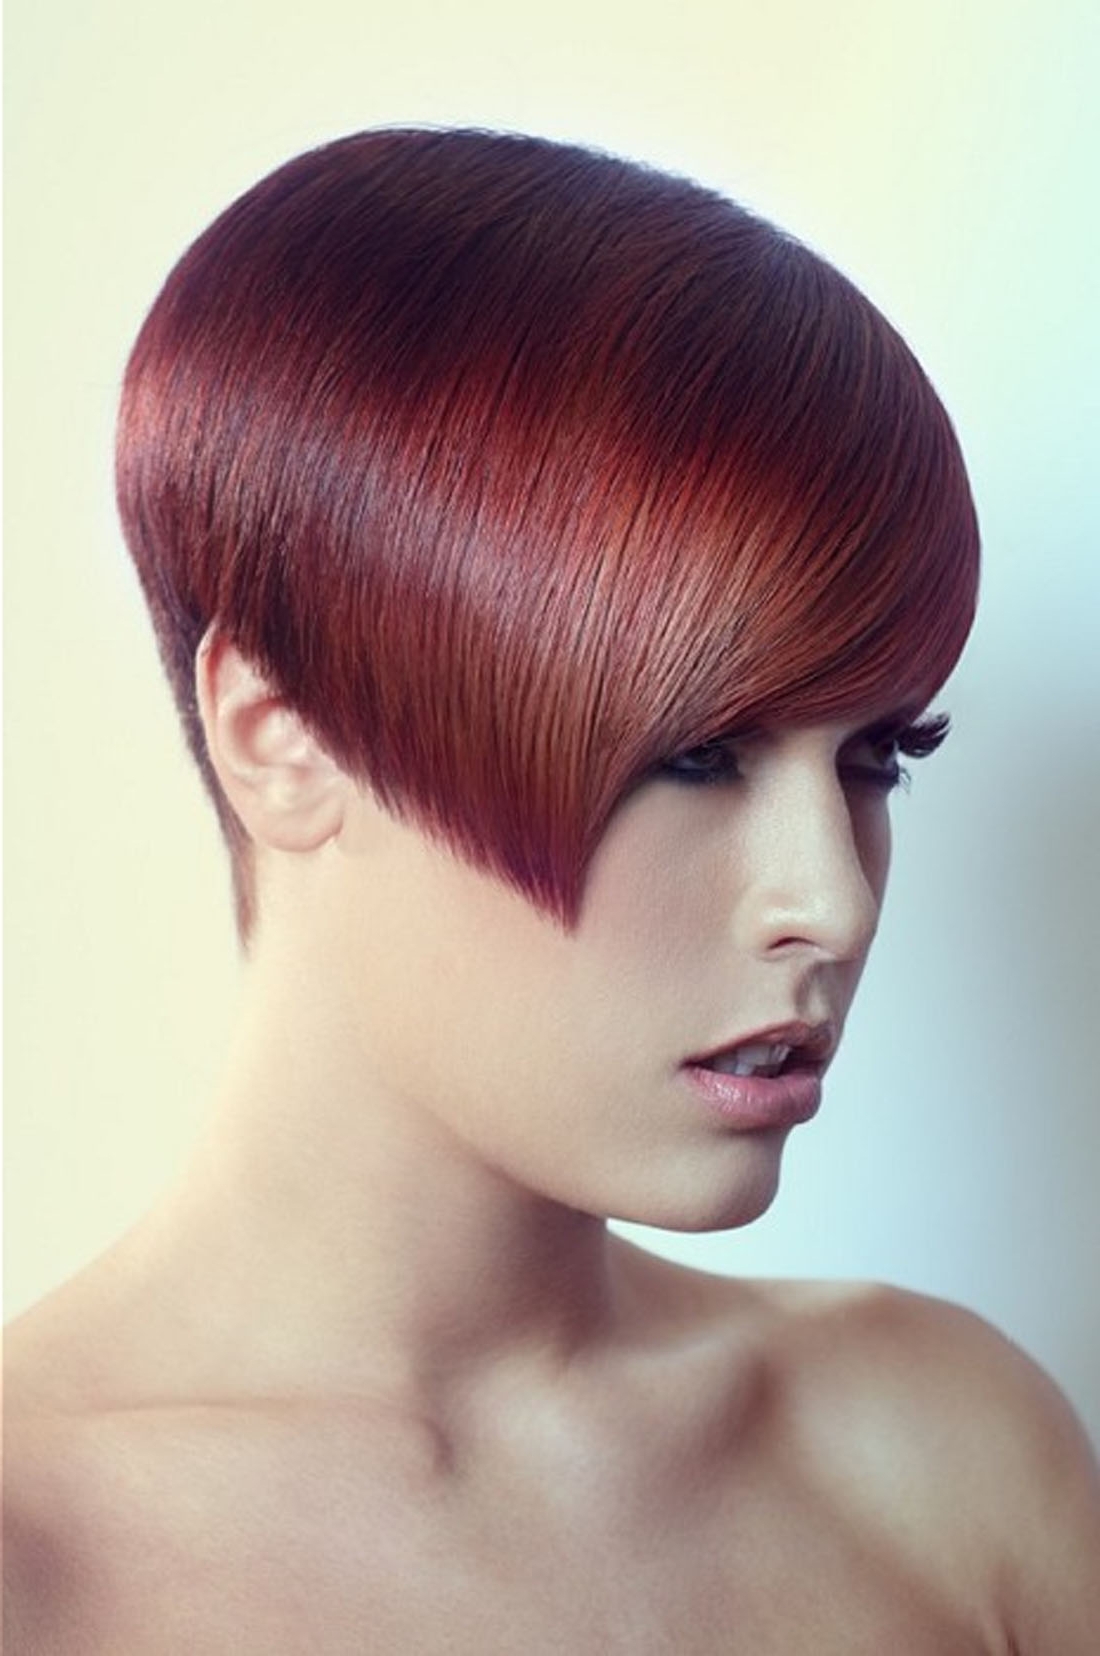 Red Hair Colour Short Hairstyles – Hairstyle For Women & Man Inside Short Hairstyles With Red Hair (View 20 of 25)